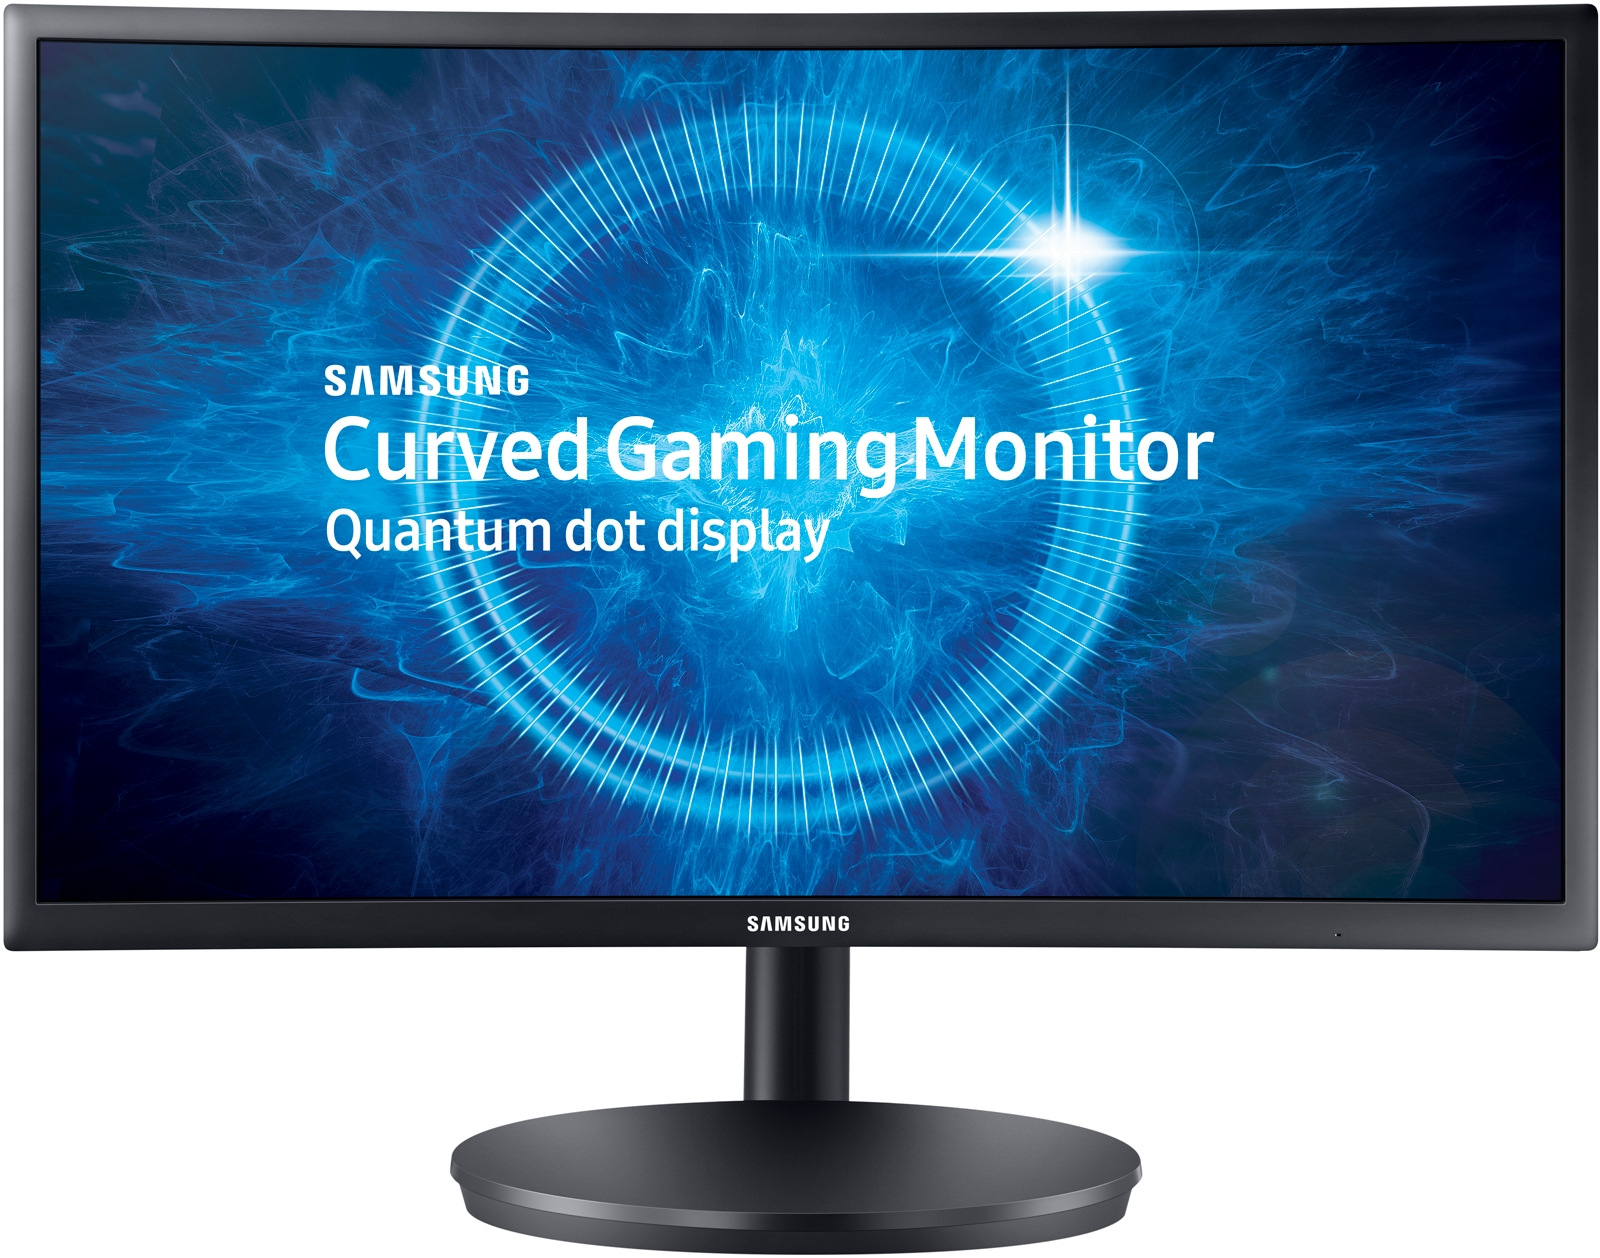 Curved Gaming Monitor (CFG70 Series) | Owner Information